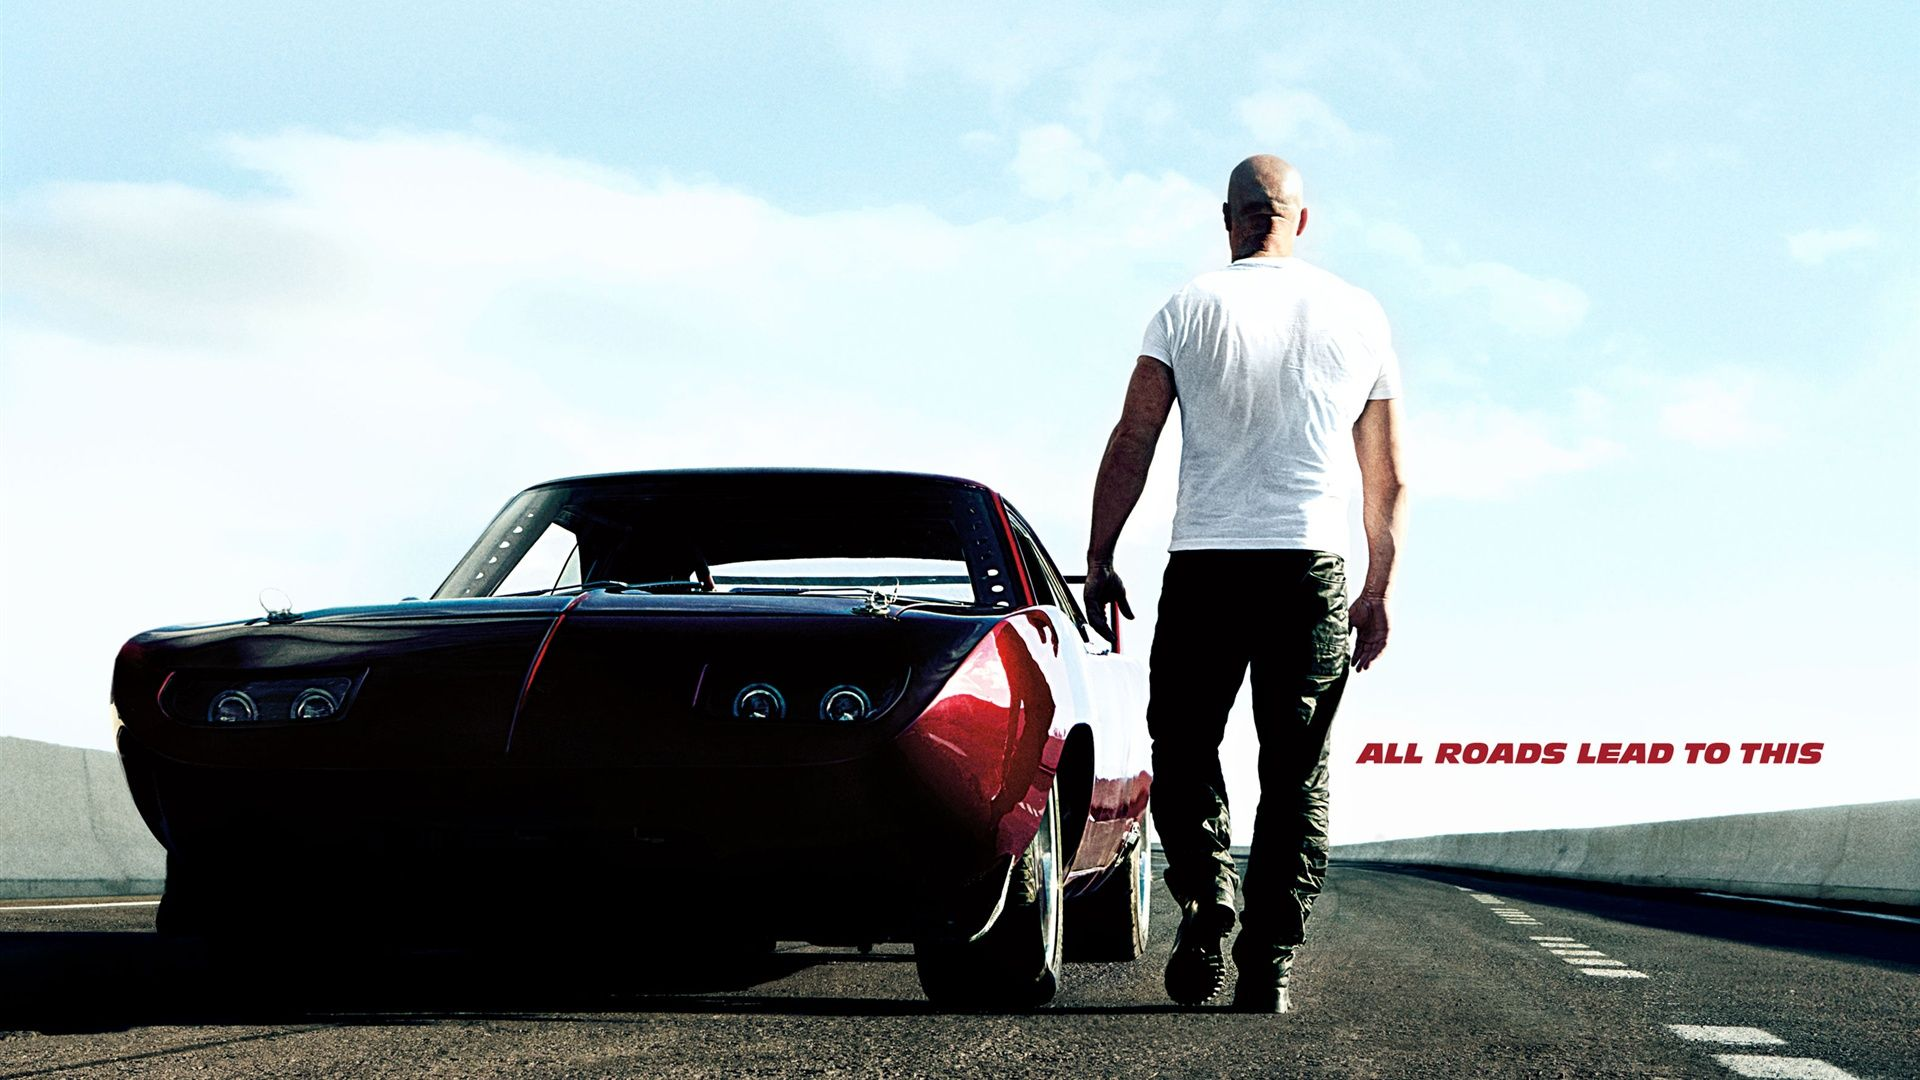 fast and furious 7 hd wallpaper download free desktop wallpaper - Fast And Furious 7 Cars Wallpapers